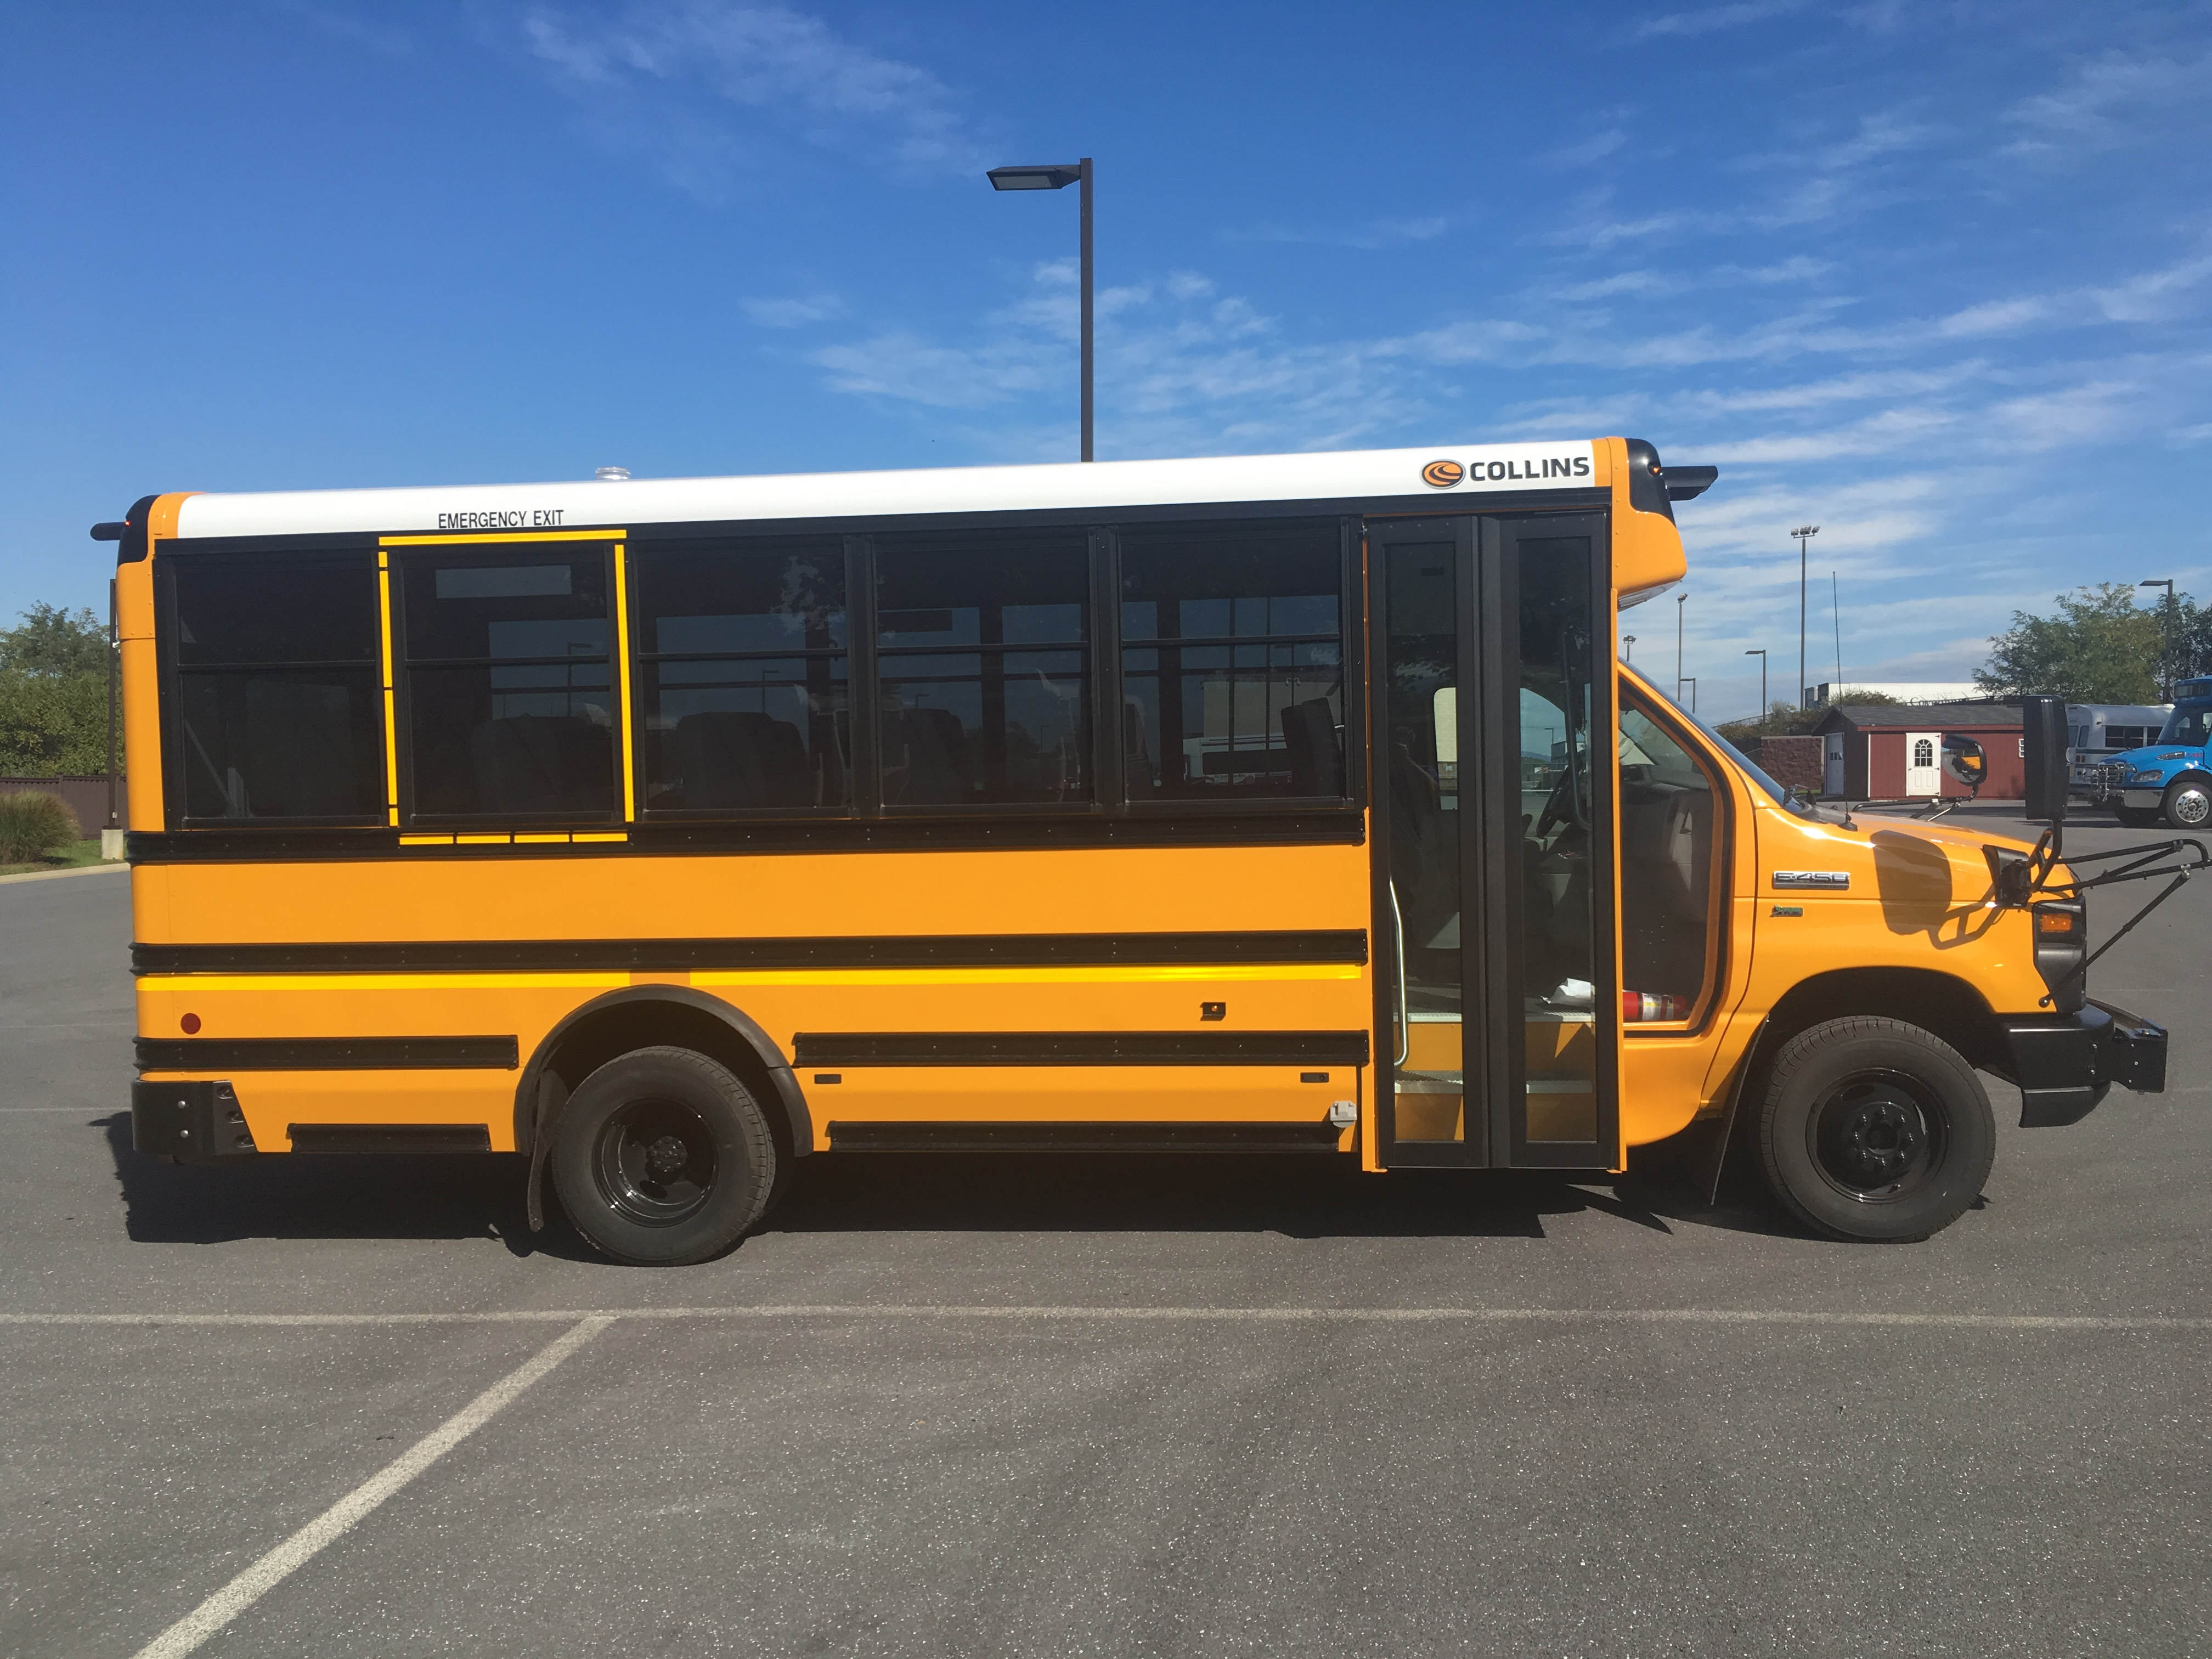 2017 Ford Collins School Bus 30 Passengers 020604